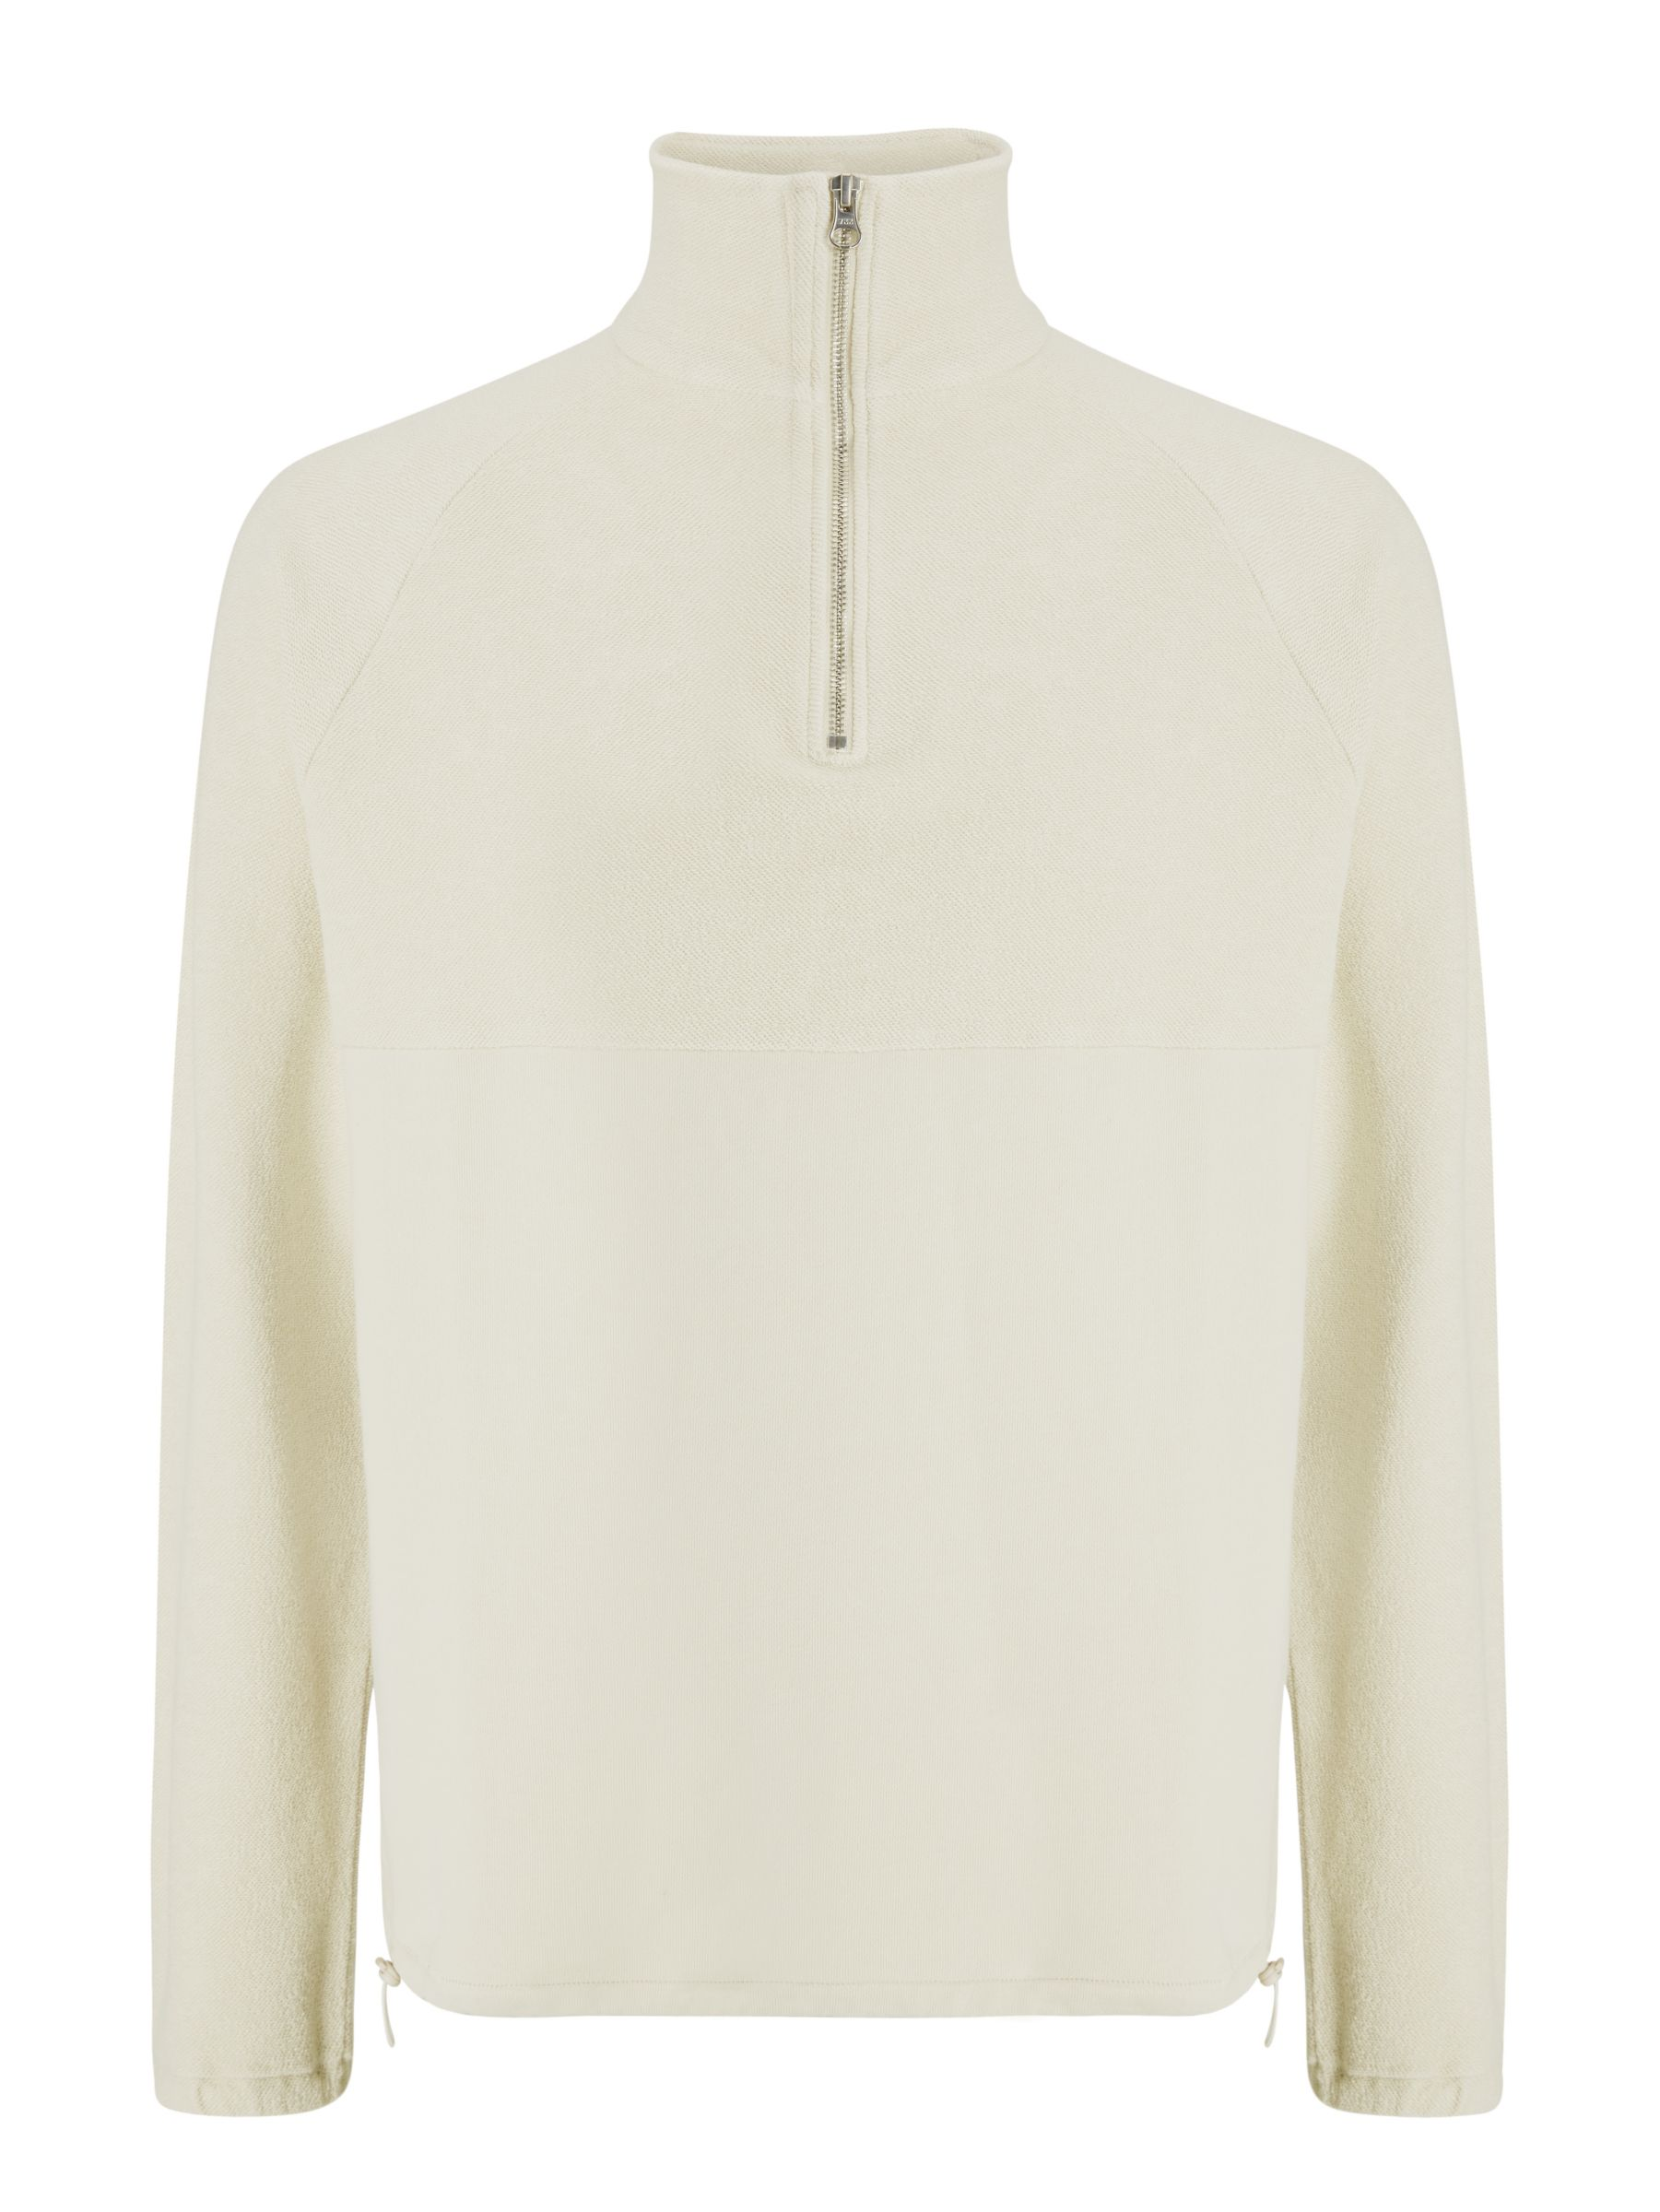 Buy Les Basics Le Zip Jersey Pull Over Top, Stone, S Online at johnlewis.com